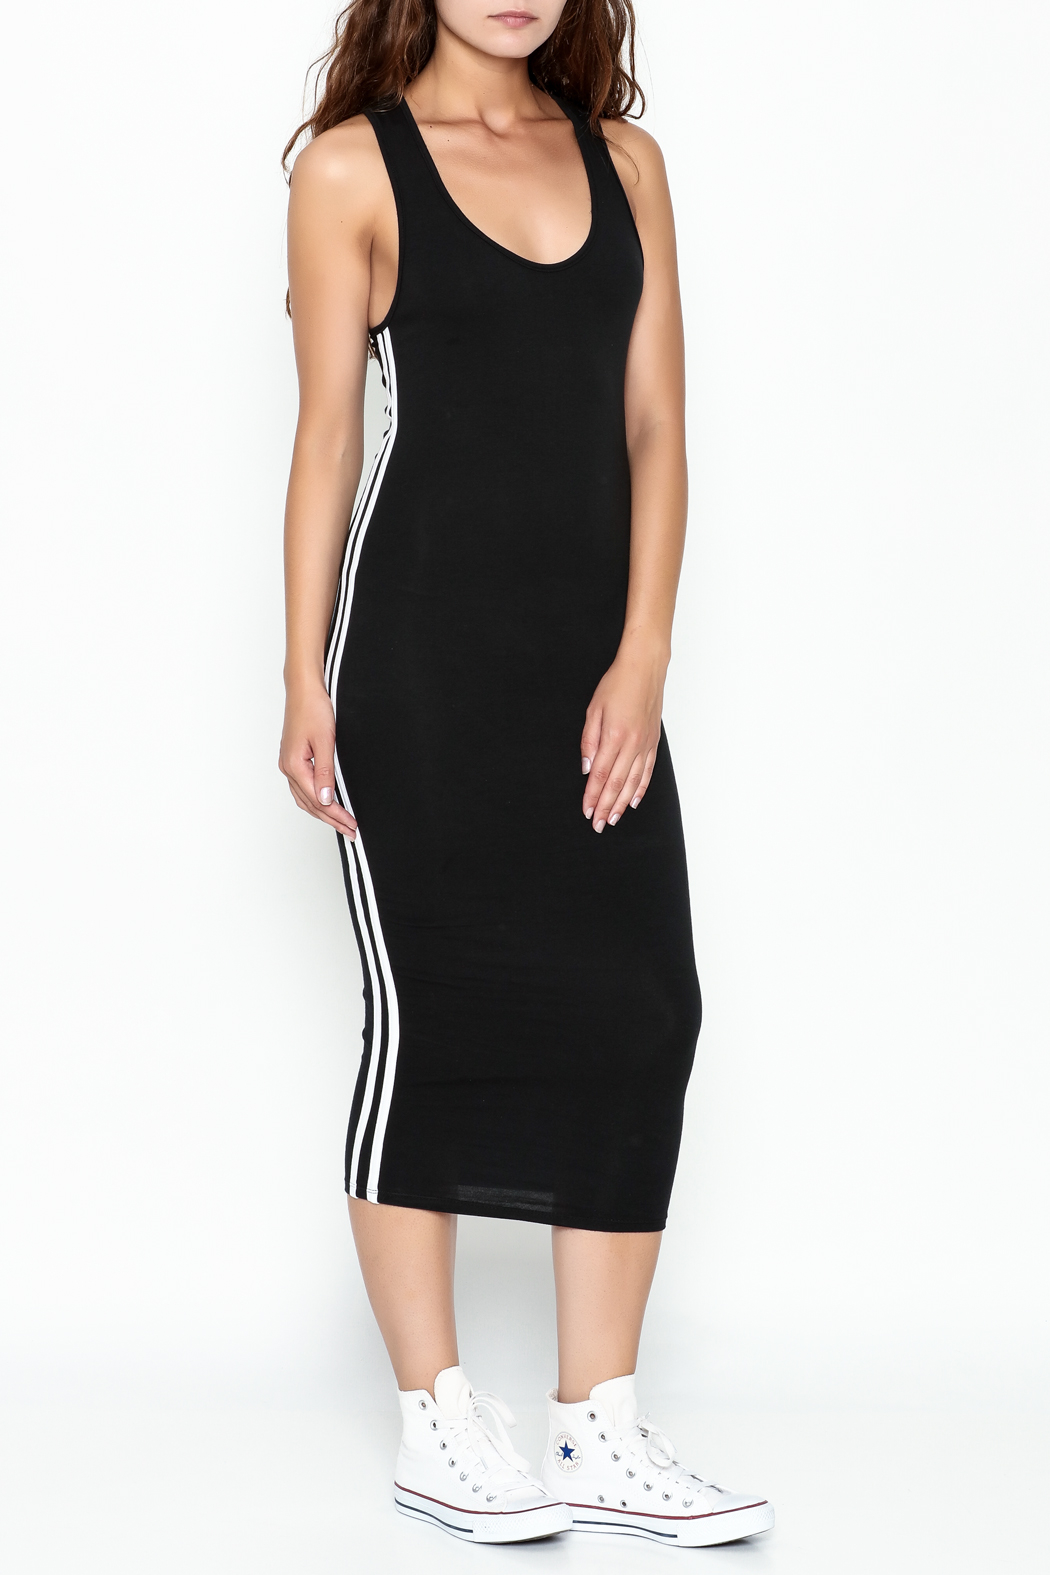 Rebdolls Back Racerback Midi Dress - Main Image